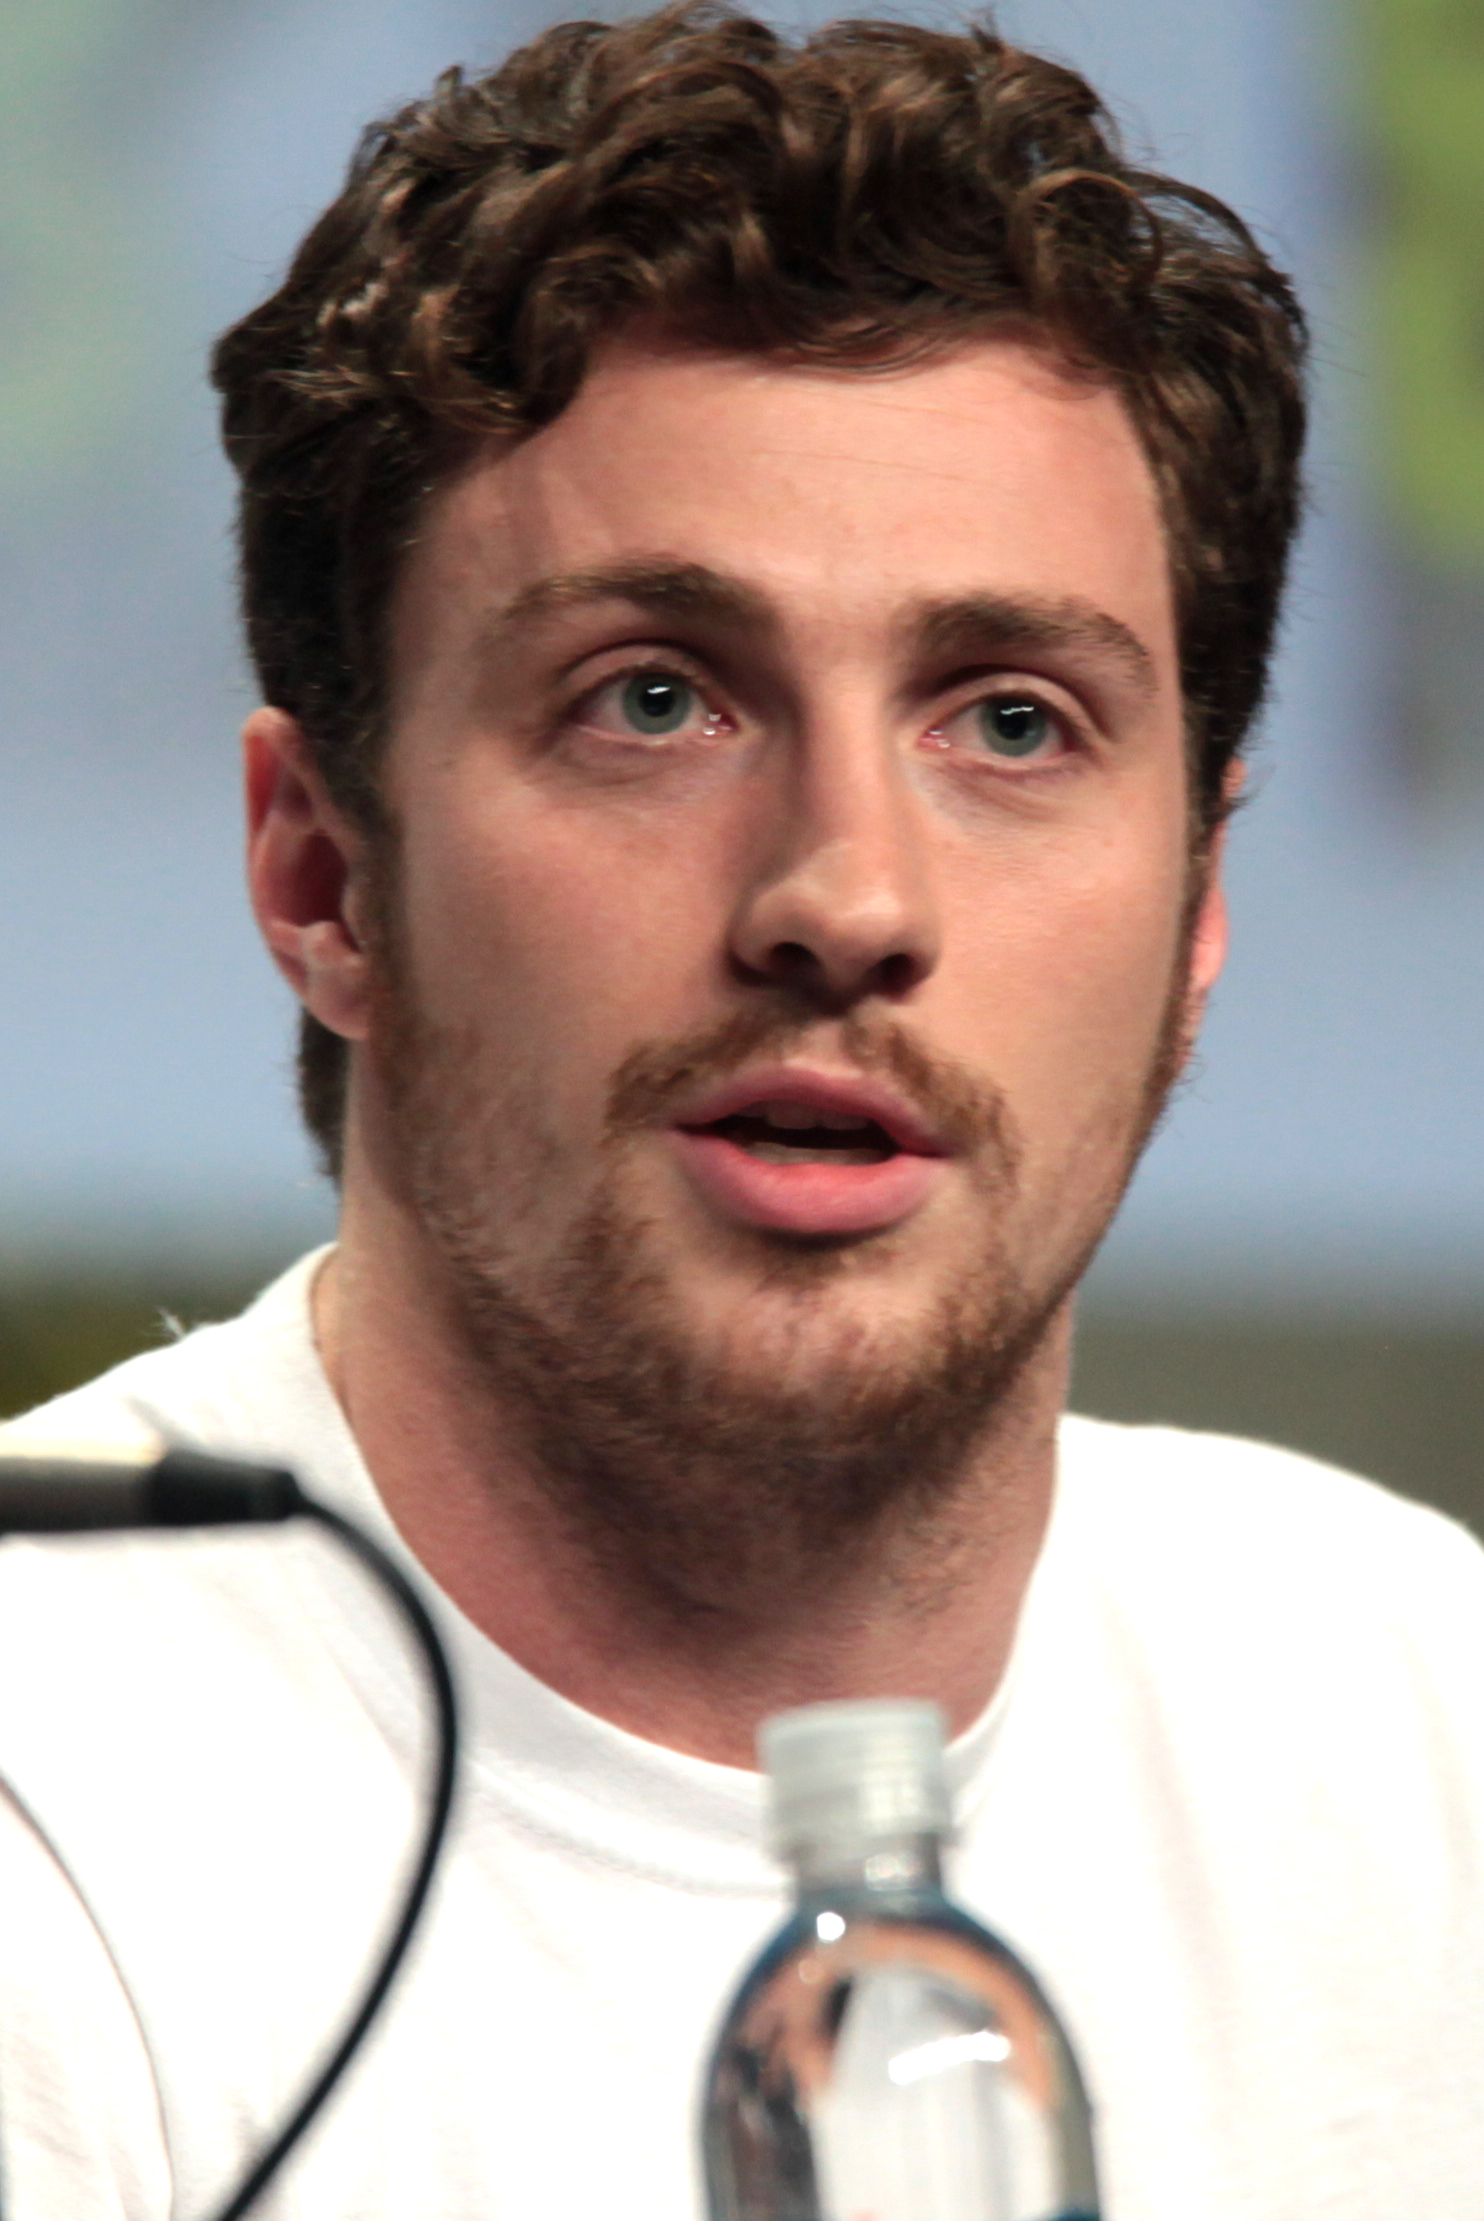 The 28-year old son of father (?) and mother(?) Aaron Taylor-Johnson in 2018 photo. Aaron Taylor-Johnson earned a 3.5 million dollar salary - leaving the net worth at 16 million in 2018